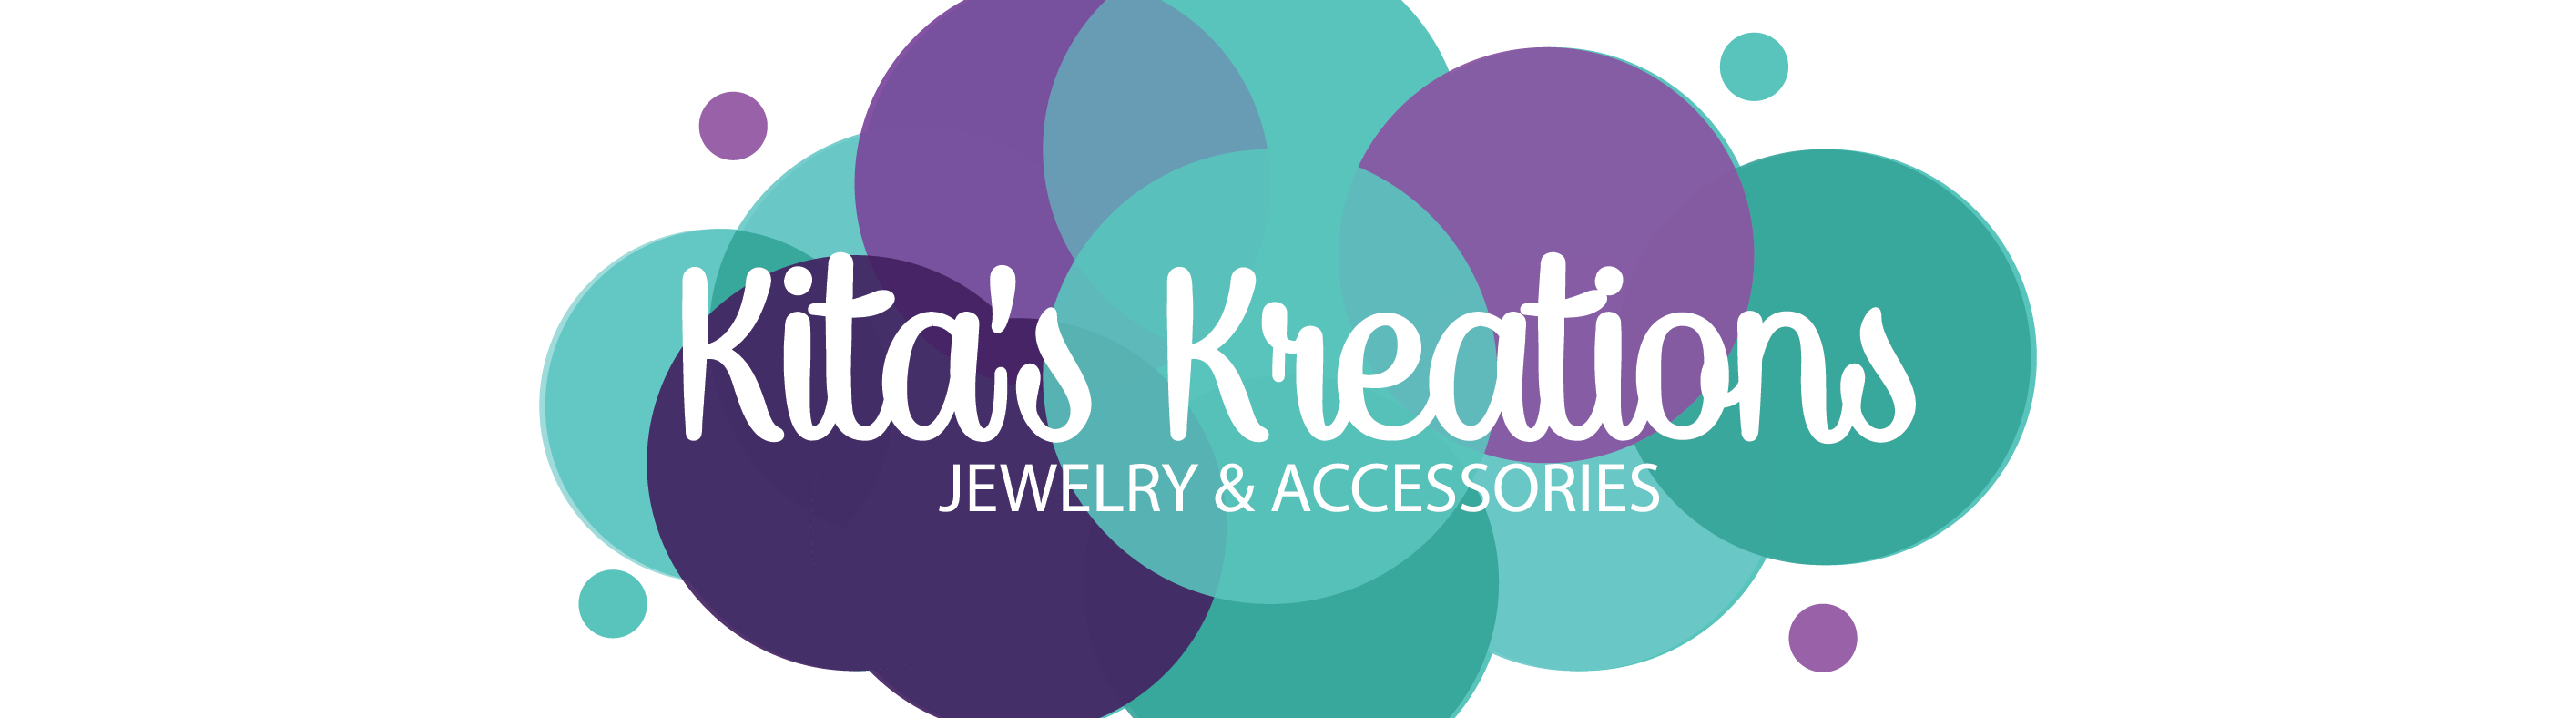 Kitas kreations jewelry   accessories301